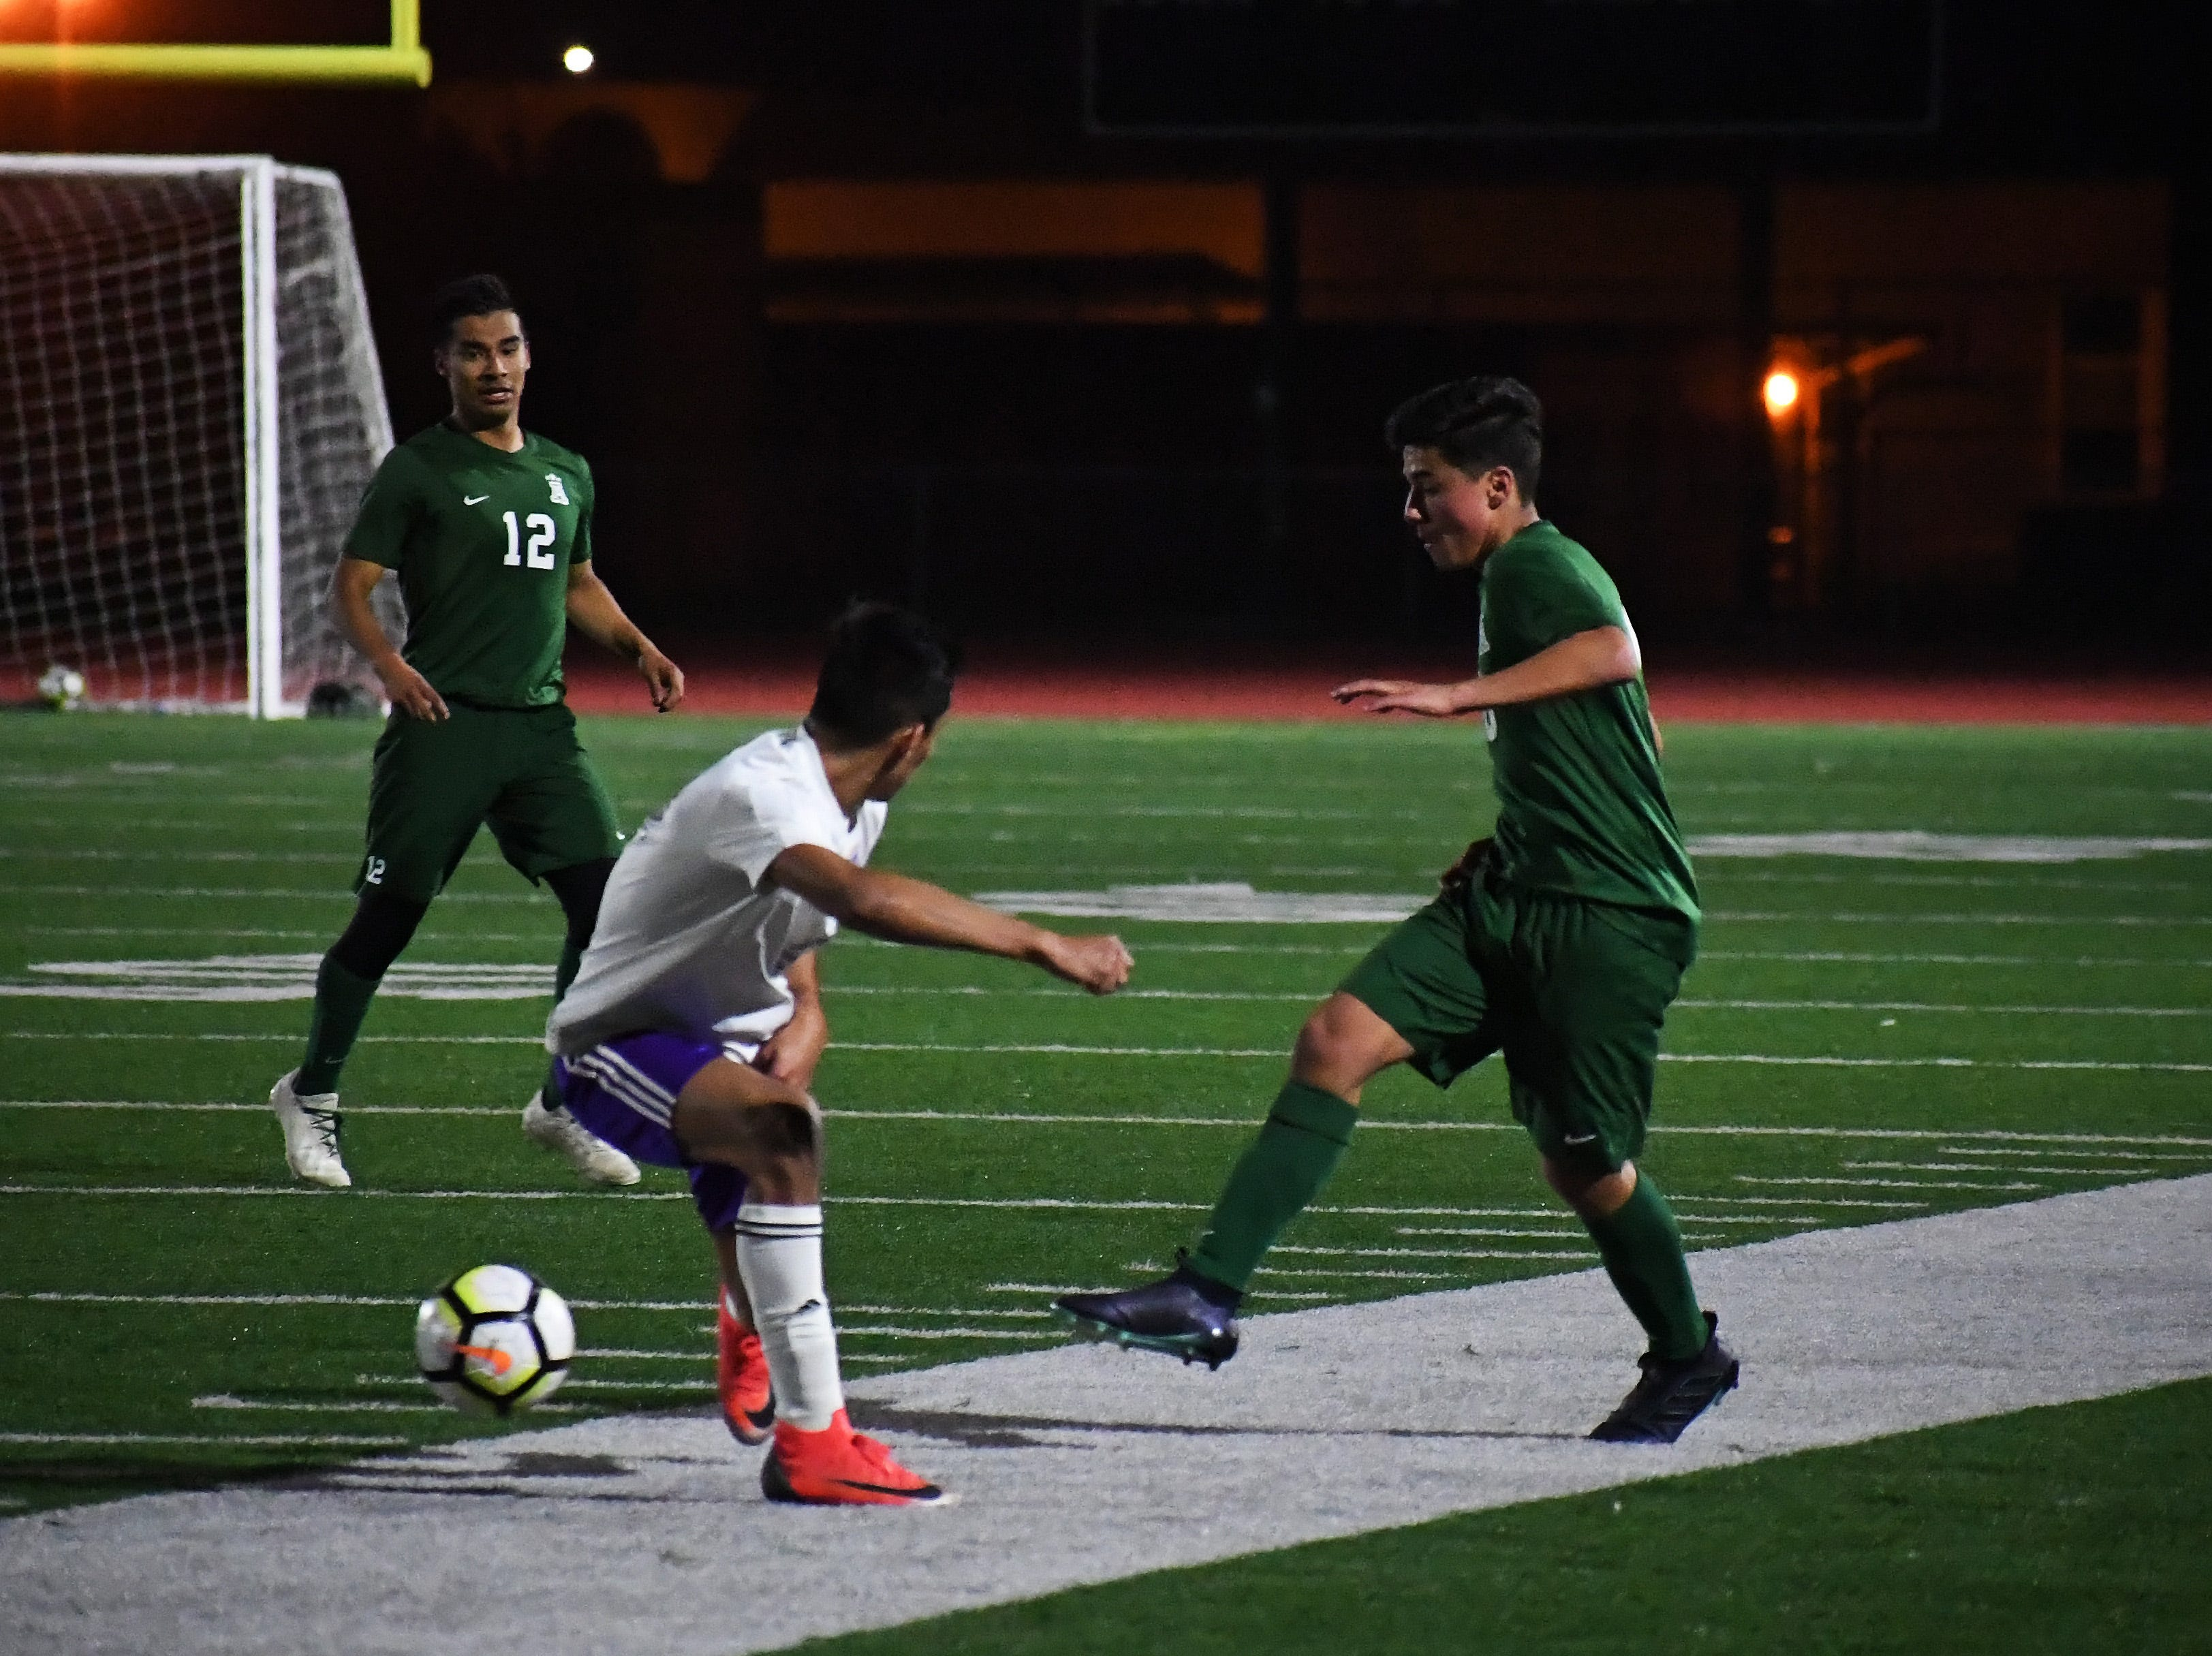 Alisal midfielder Jacob Cabrera (10) passes between the legs of defender.